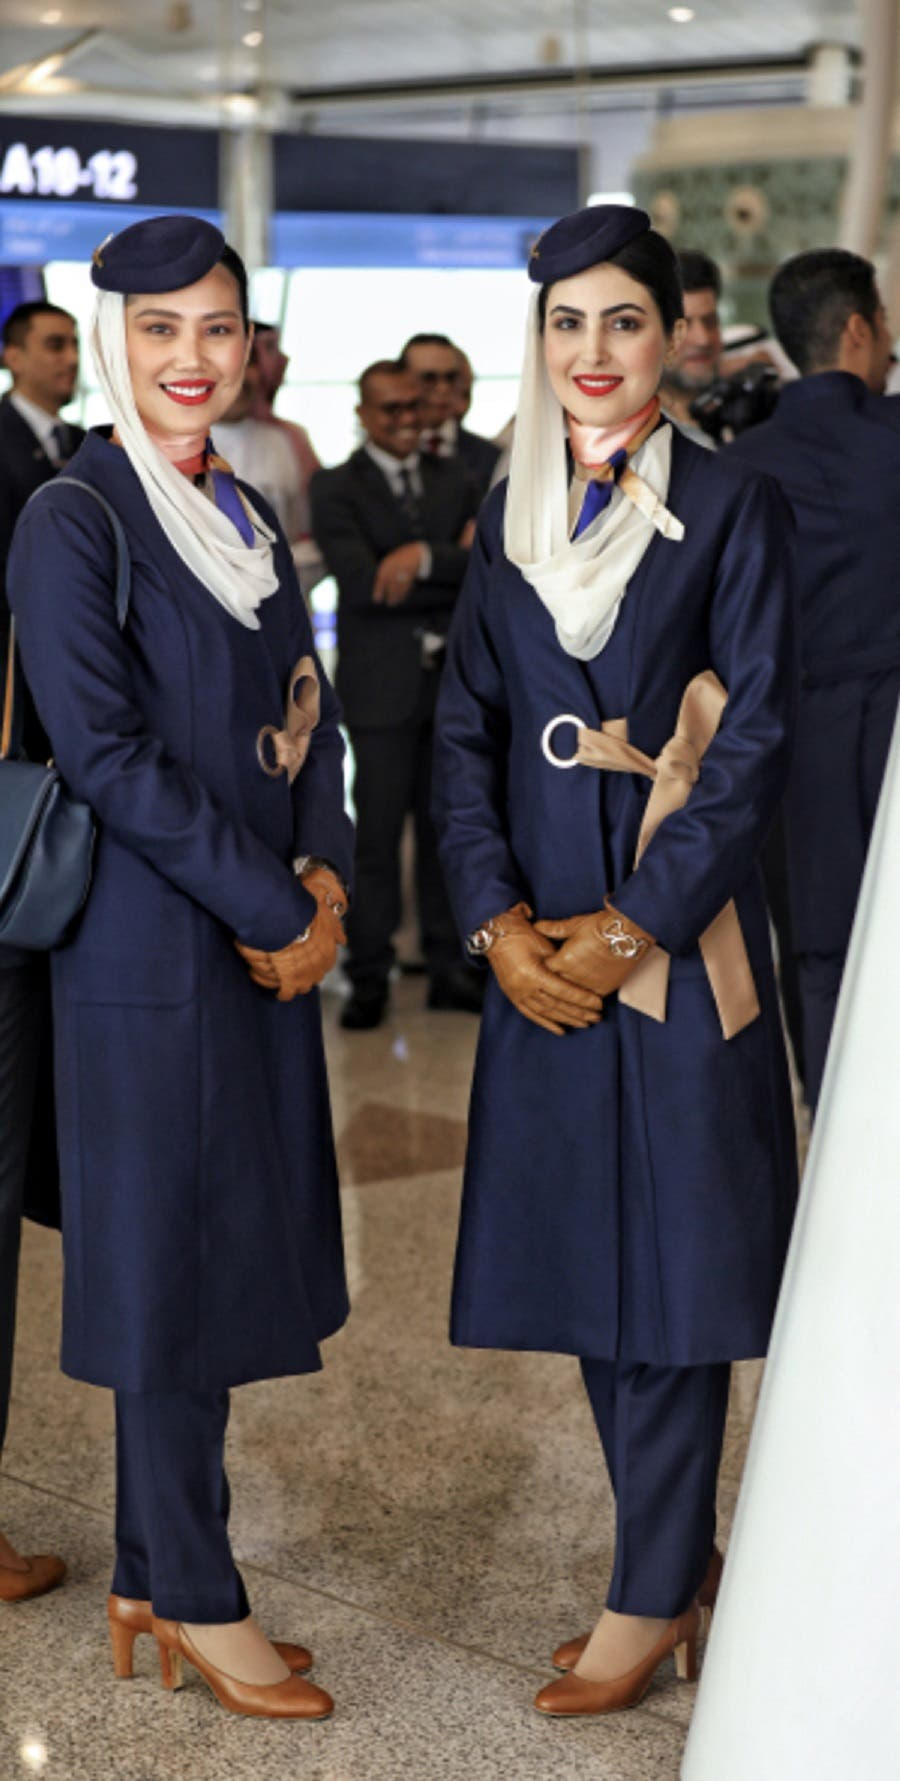 Saudi Arabian Airlines cabin crew new uniform -2 (Supplied)